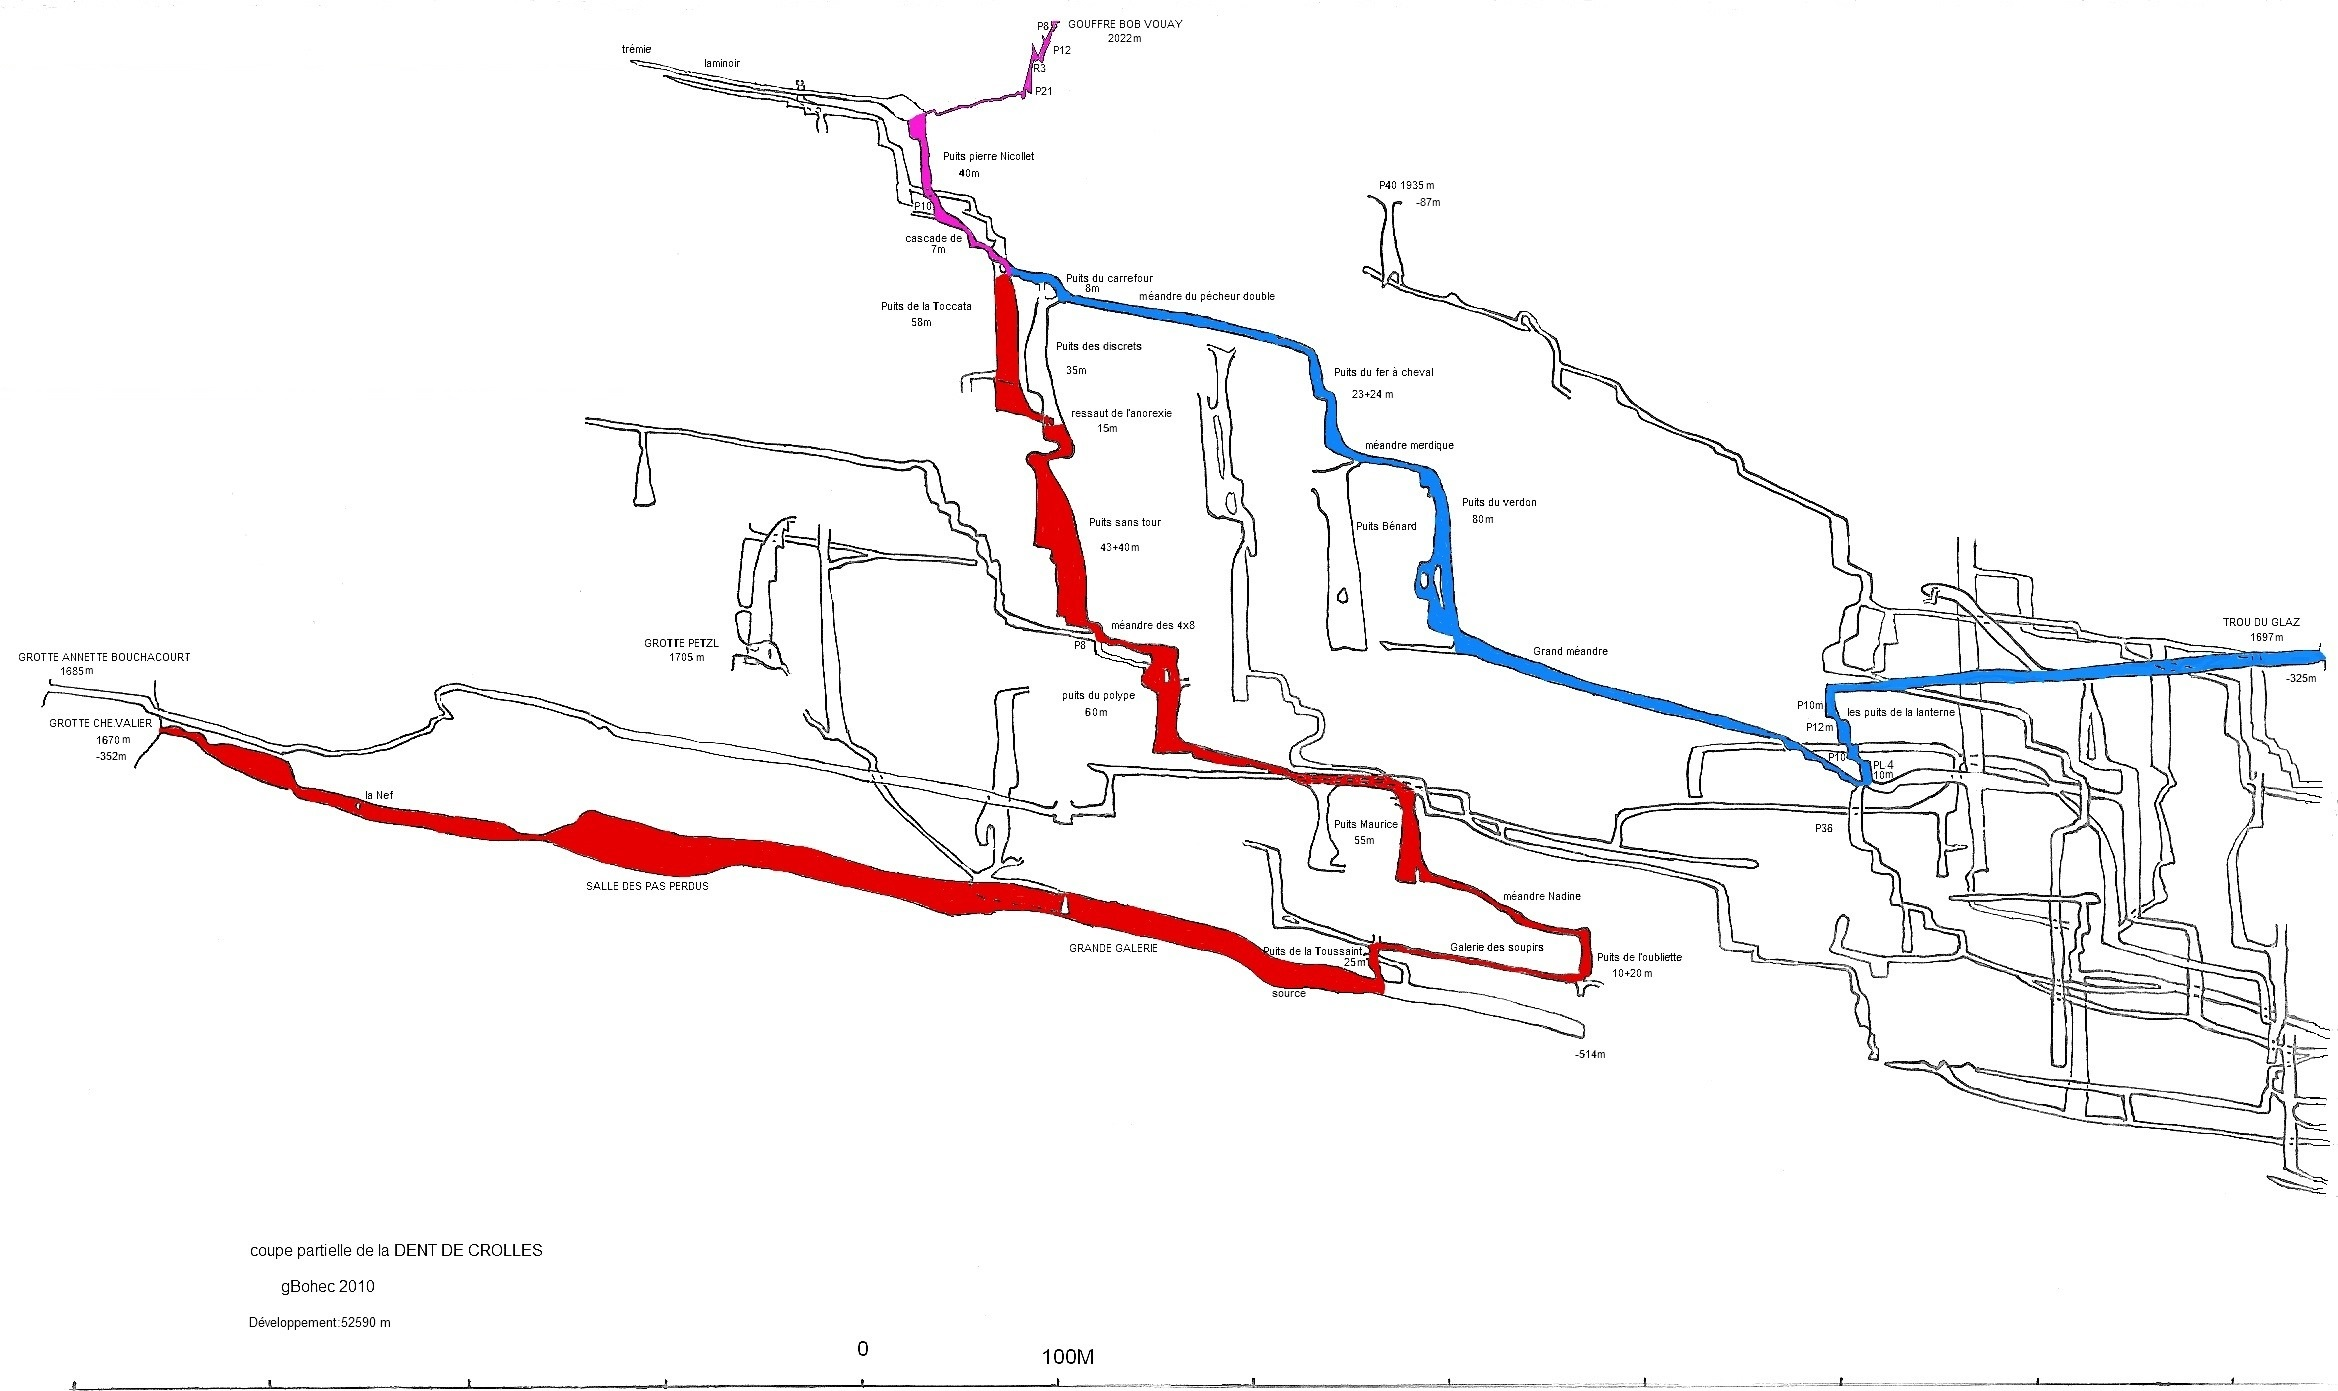 Cross-section of the passages below Gouffre Bob Vouay, drawn by Gilbert Bohec. Red shows the Vouay - Chevalier route; blue the Vouay - Glaz route. Download to see highest resolution available